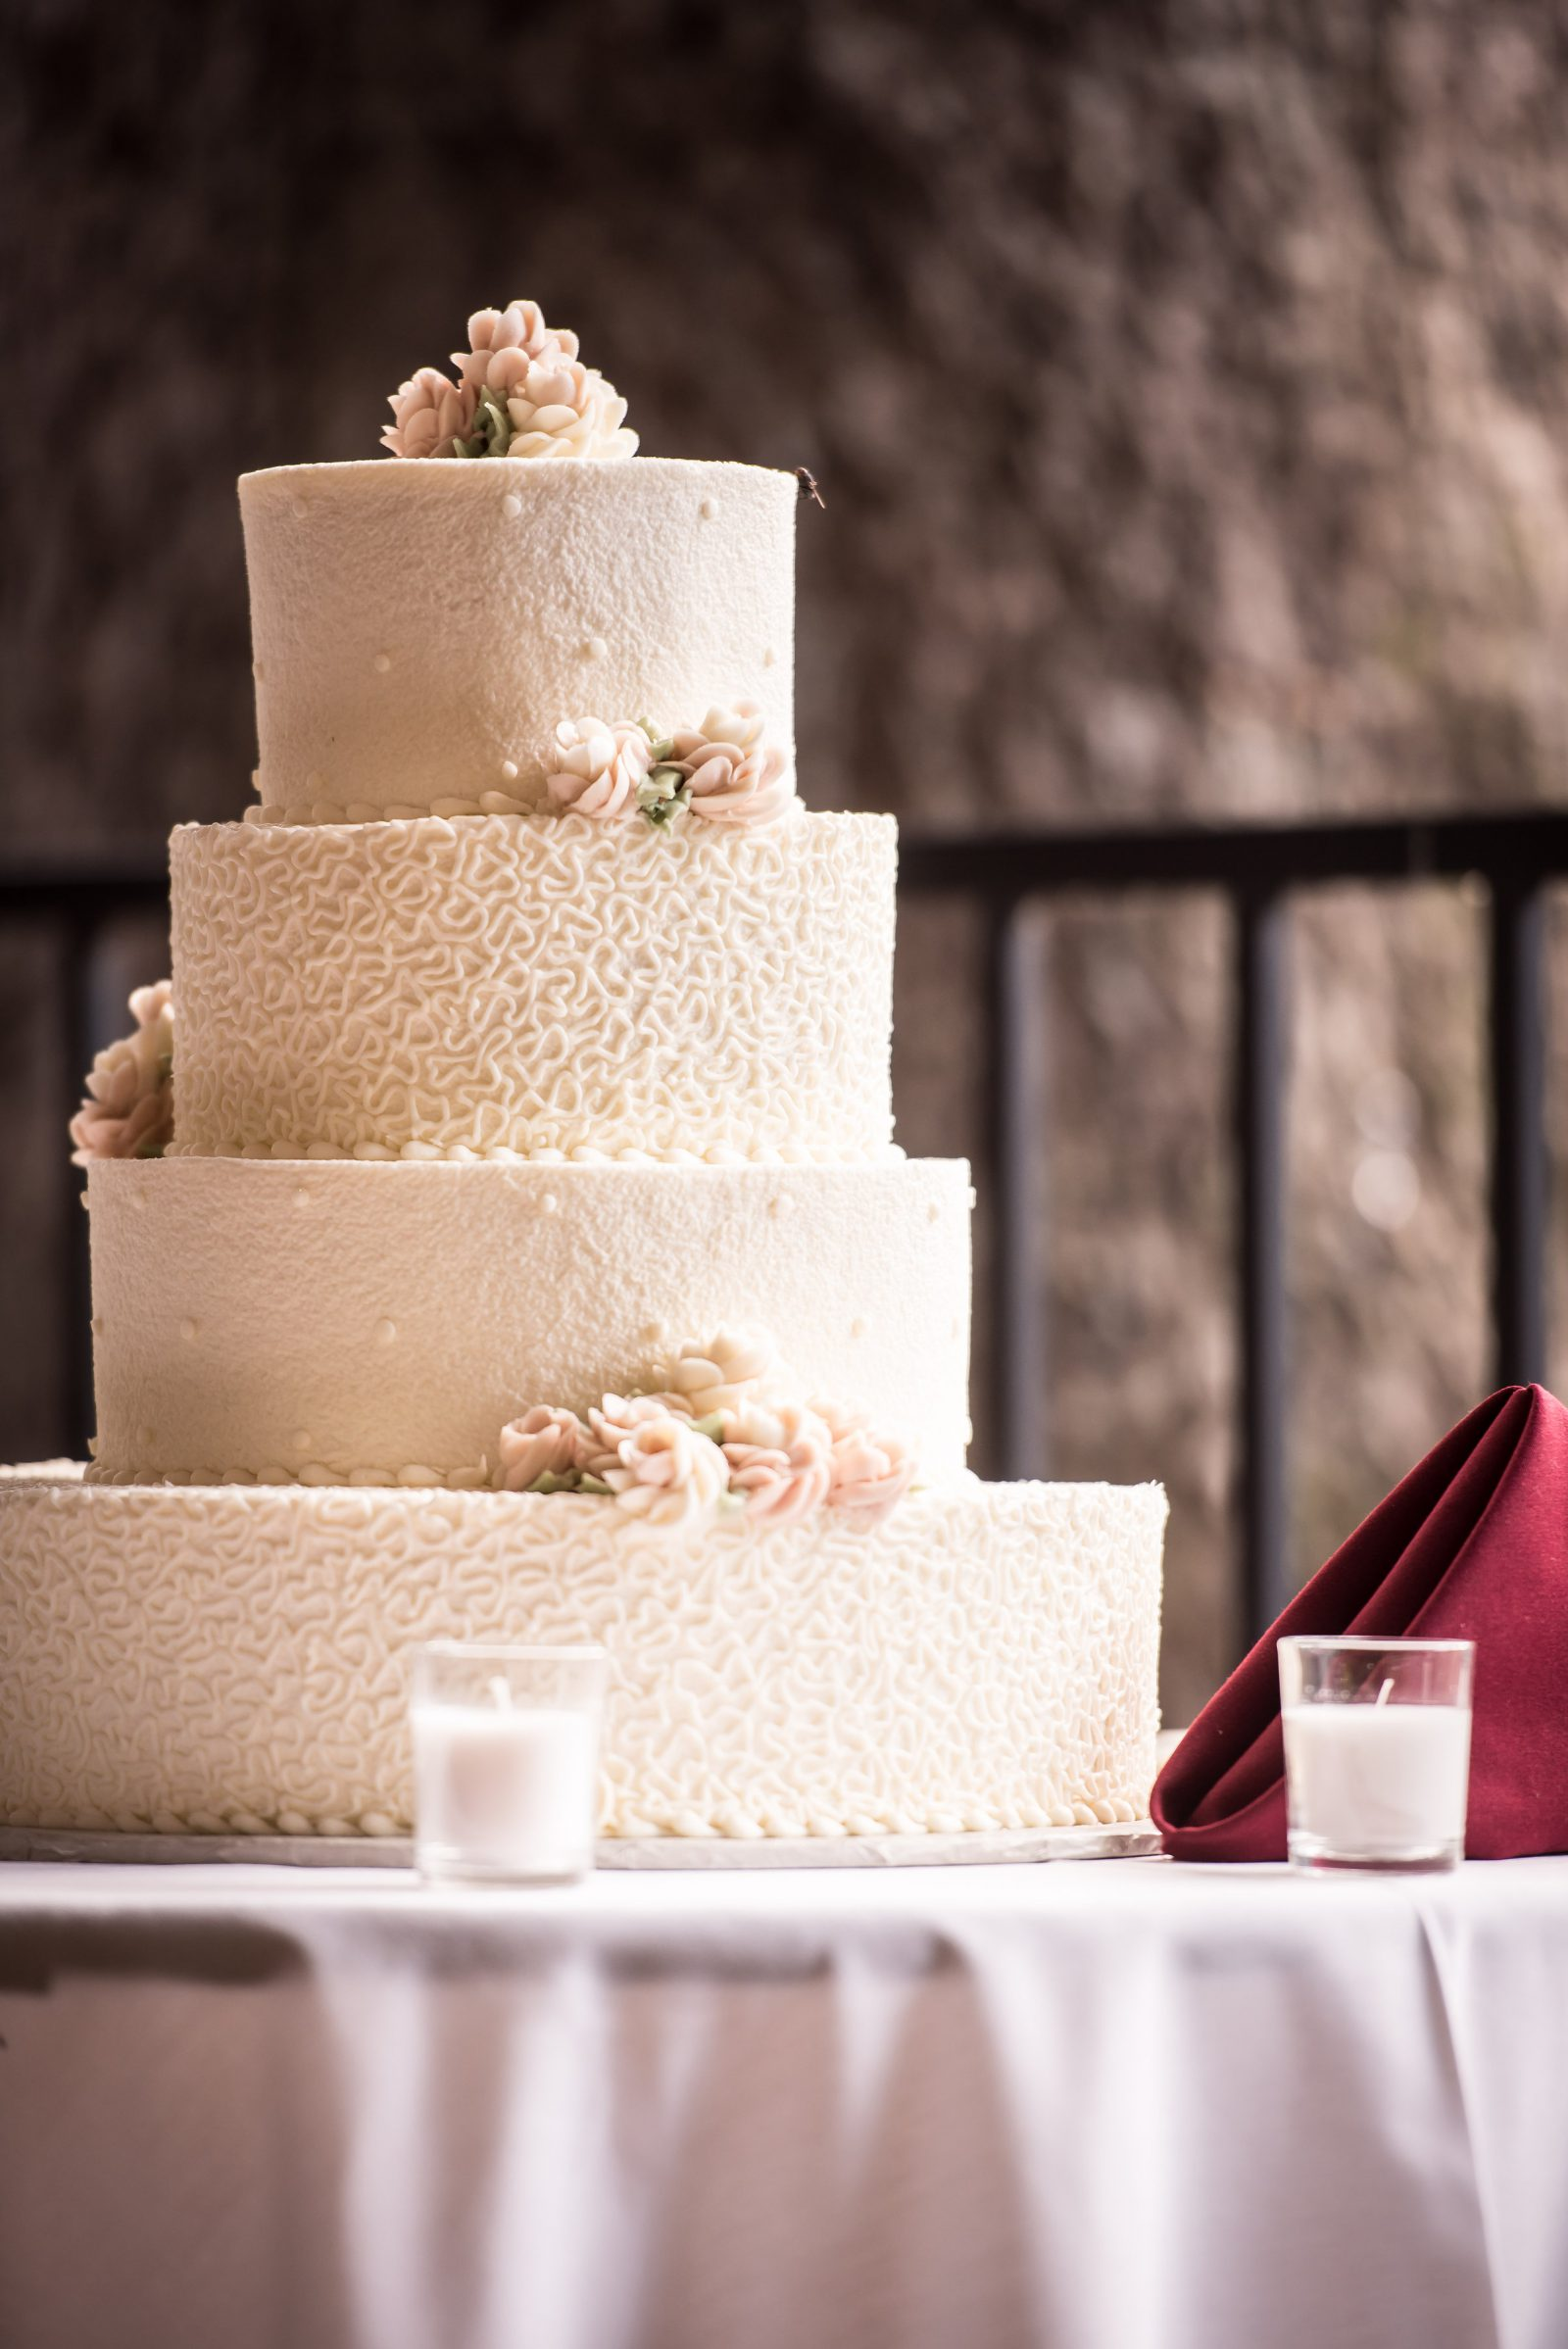 Four tiered ivory wedding cake with different textures on each tier and sugar flowers by The Master's Baker. Photo by Christie Green Photography